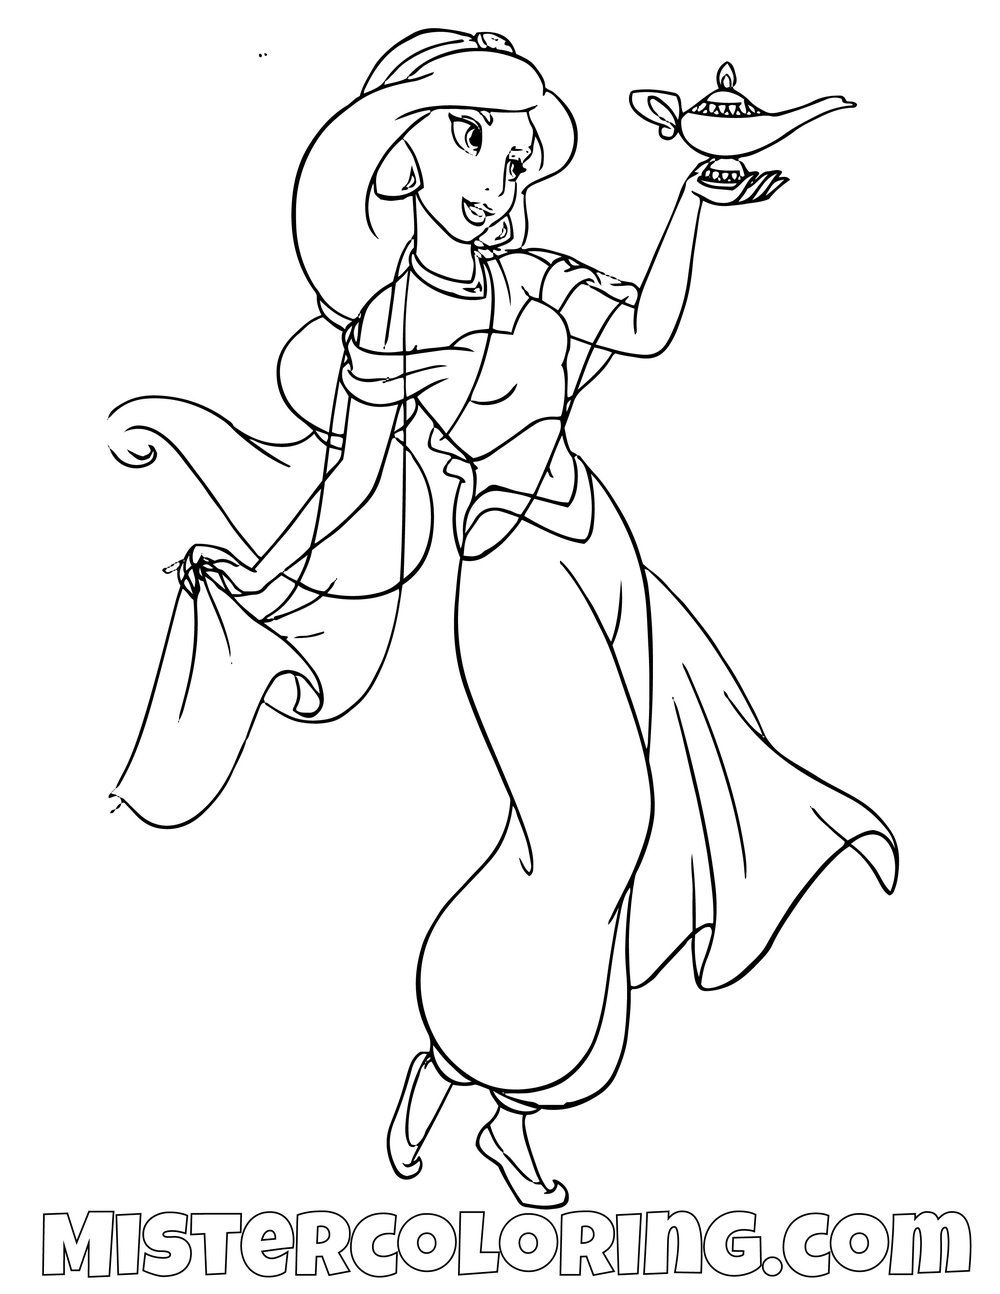 Princess Jasmine Holding Genie Lamp Aladdin Coloring Page For Kids